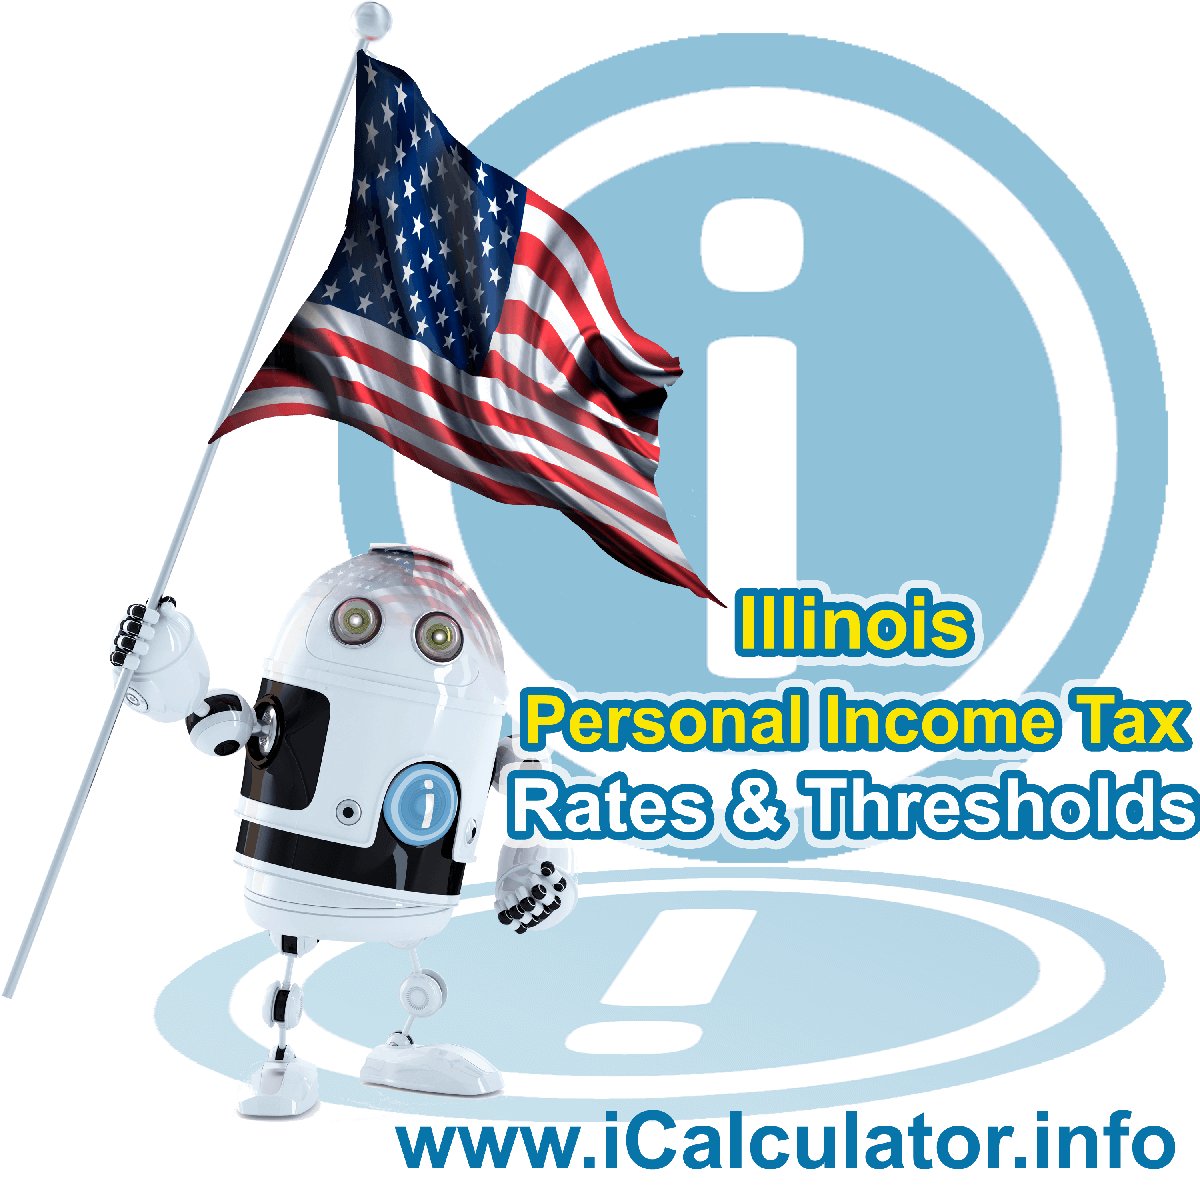 Illinois State Tax Tables 2017. This image displays details of the Illinois State Tax Tables for the 2017 tax return year which is provided in support of the 2017 US Tax Calculator